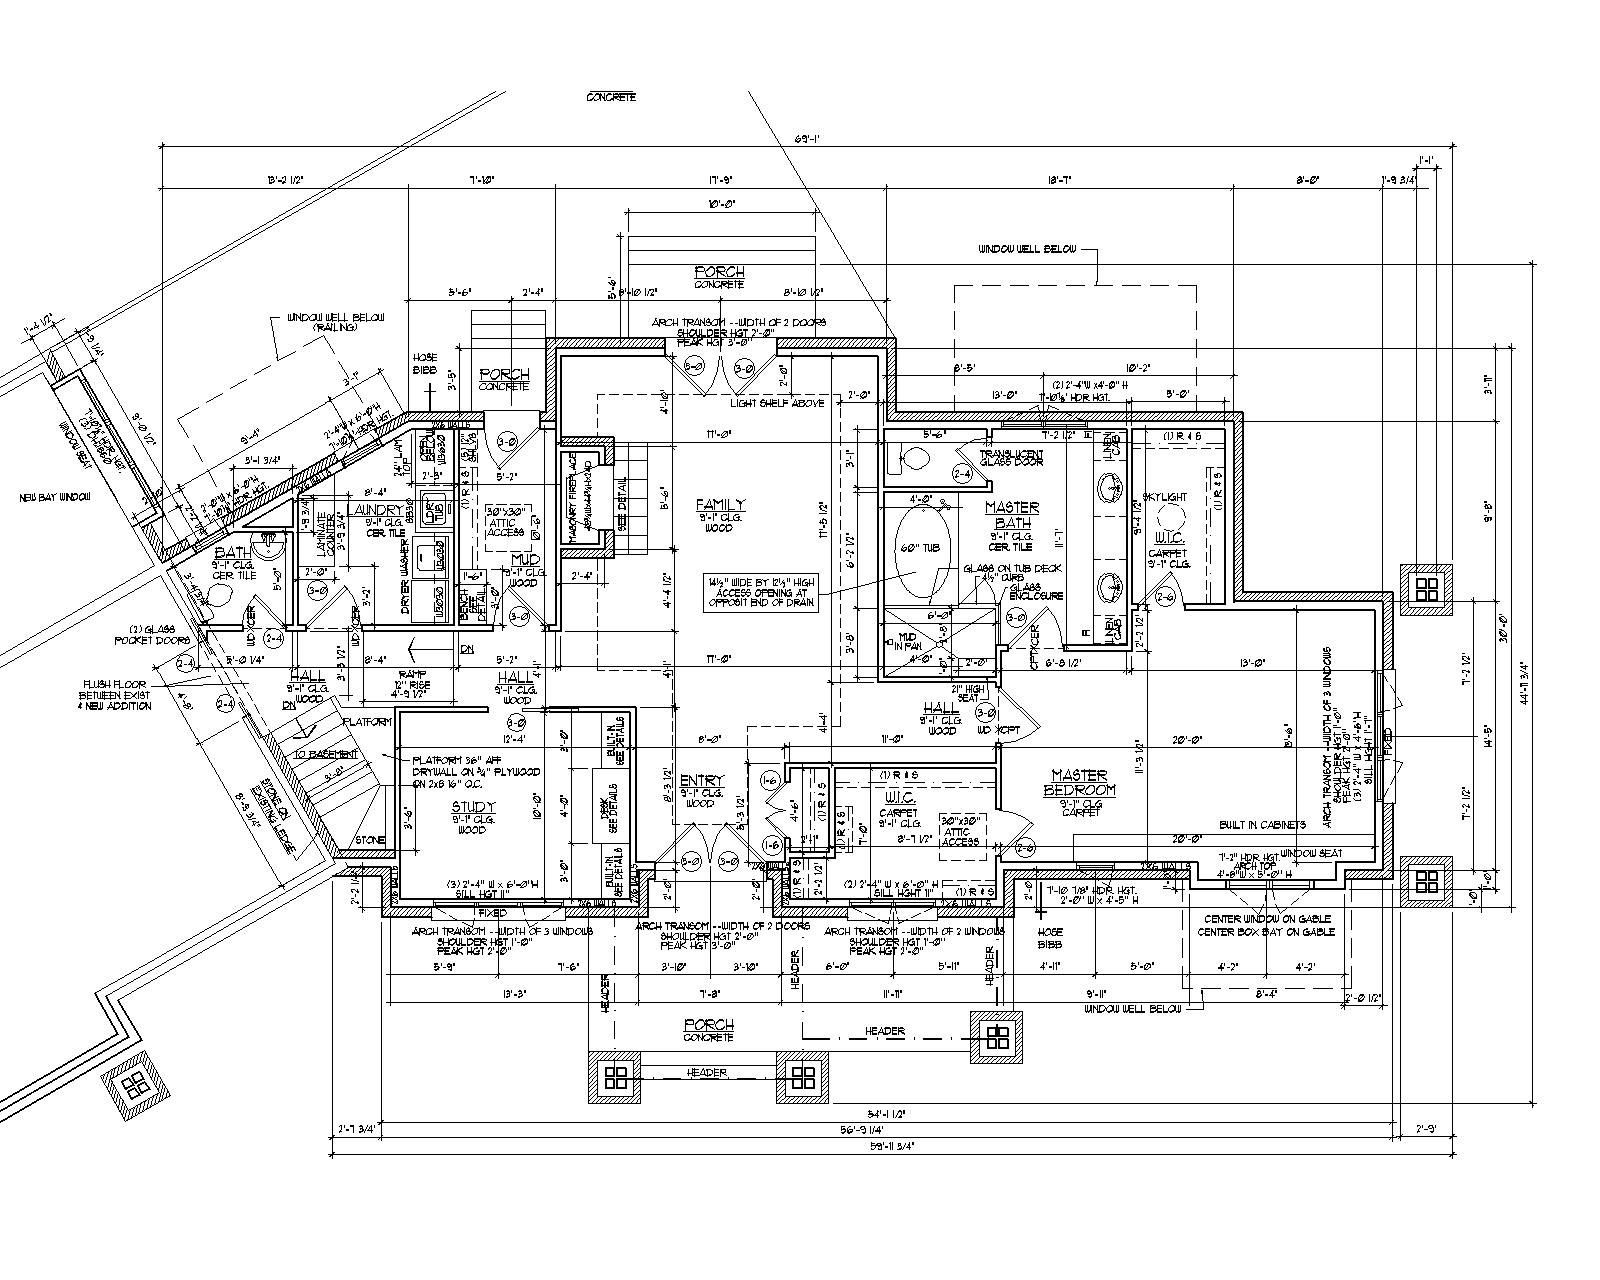 Pin by simon on carpentry construction pinterest carpentry architect floor plan amazing 12 architecture drawing blueprints architect house plans home designs malvernweather Images